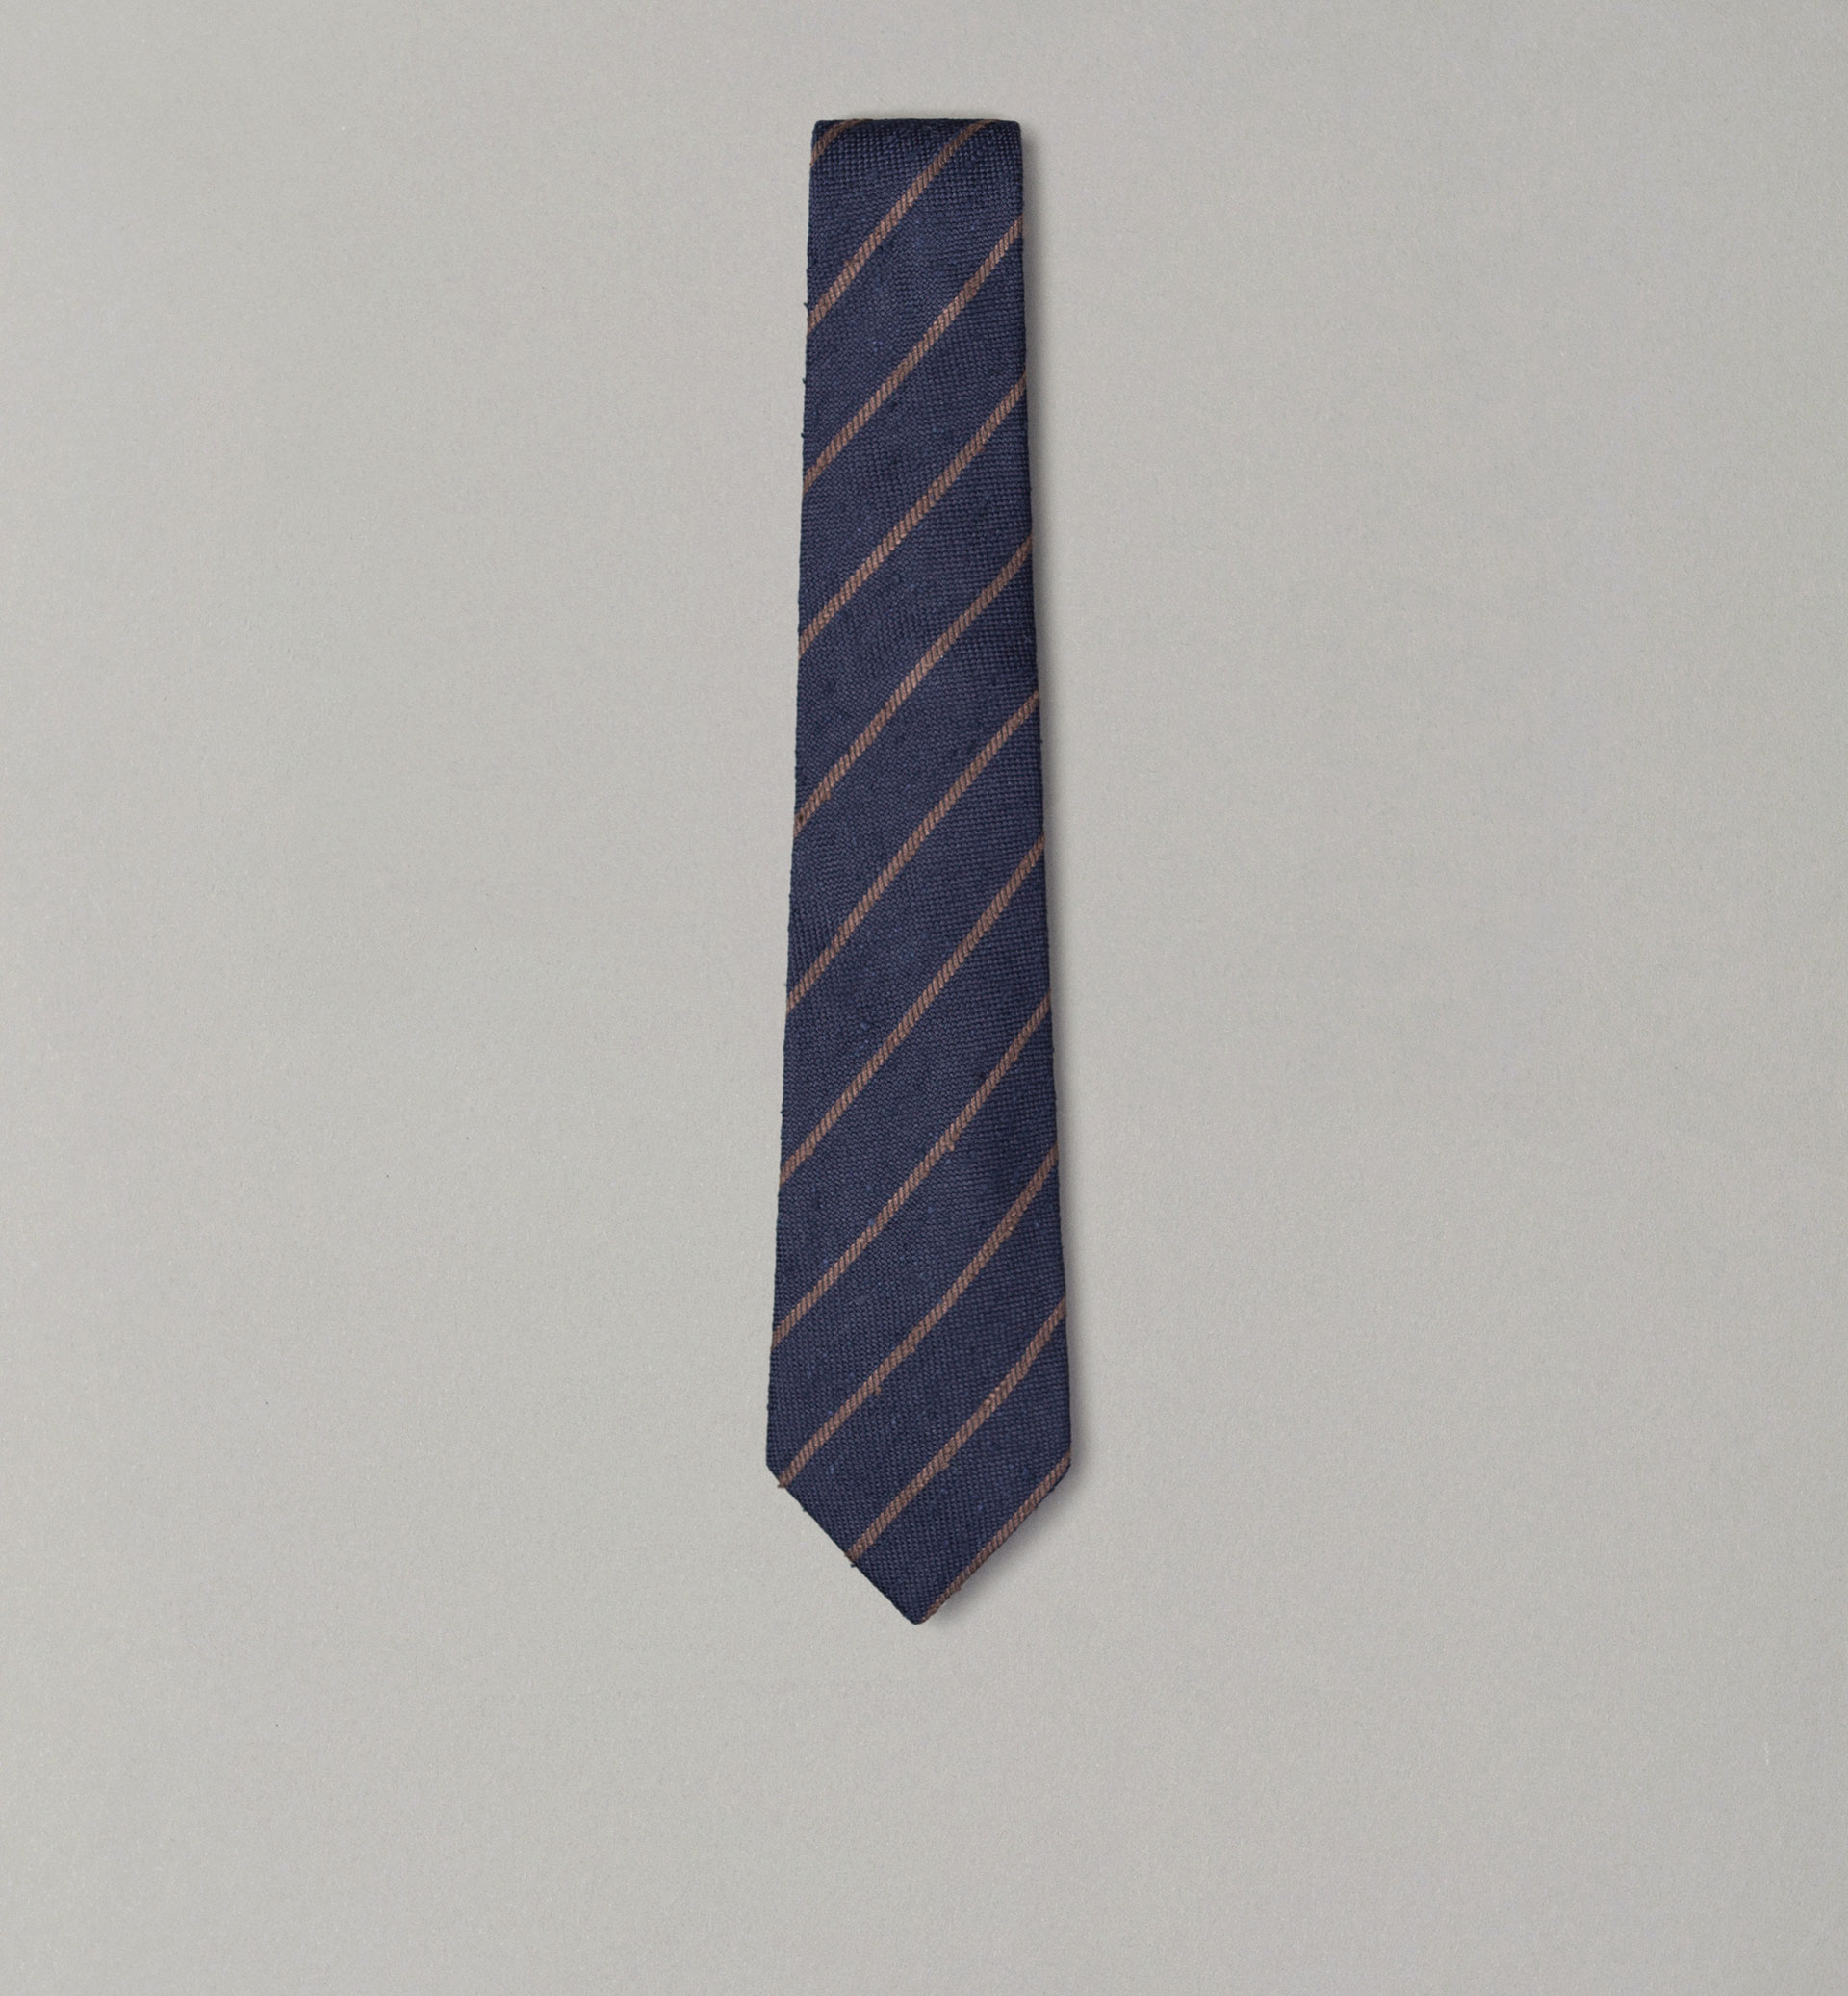 PERSONAL TAILORING BROWN STRIPED RUSTIC TIE